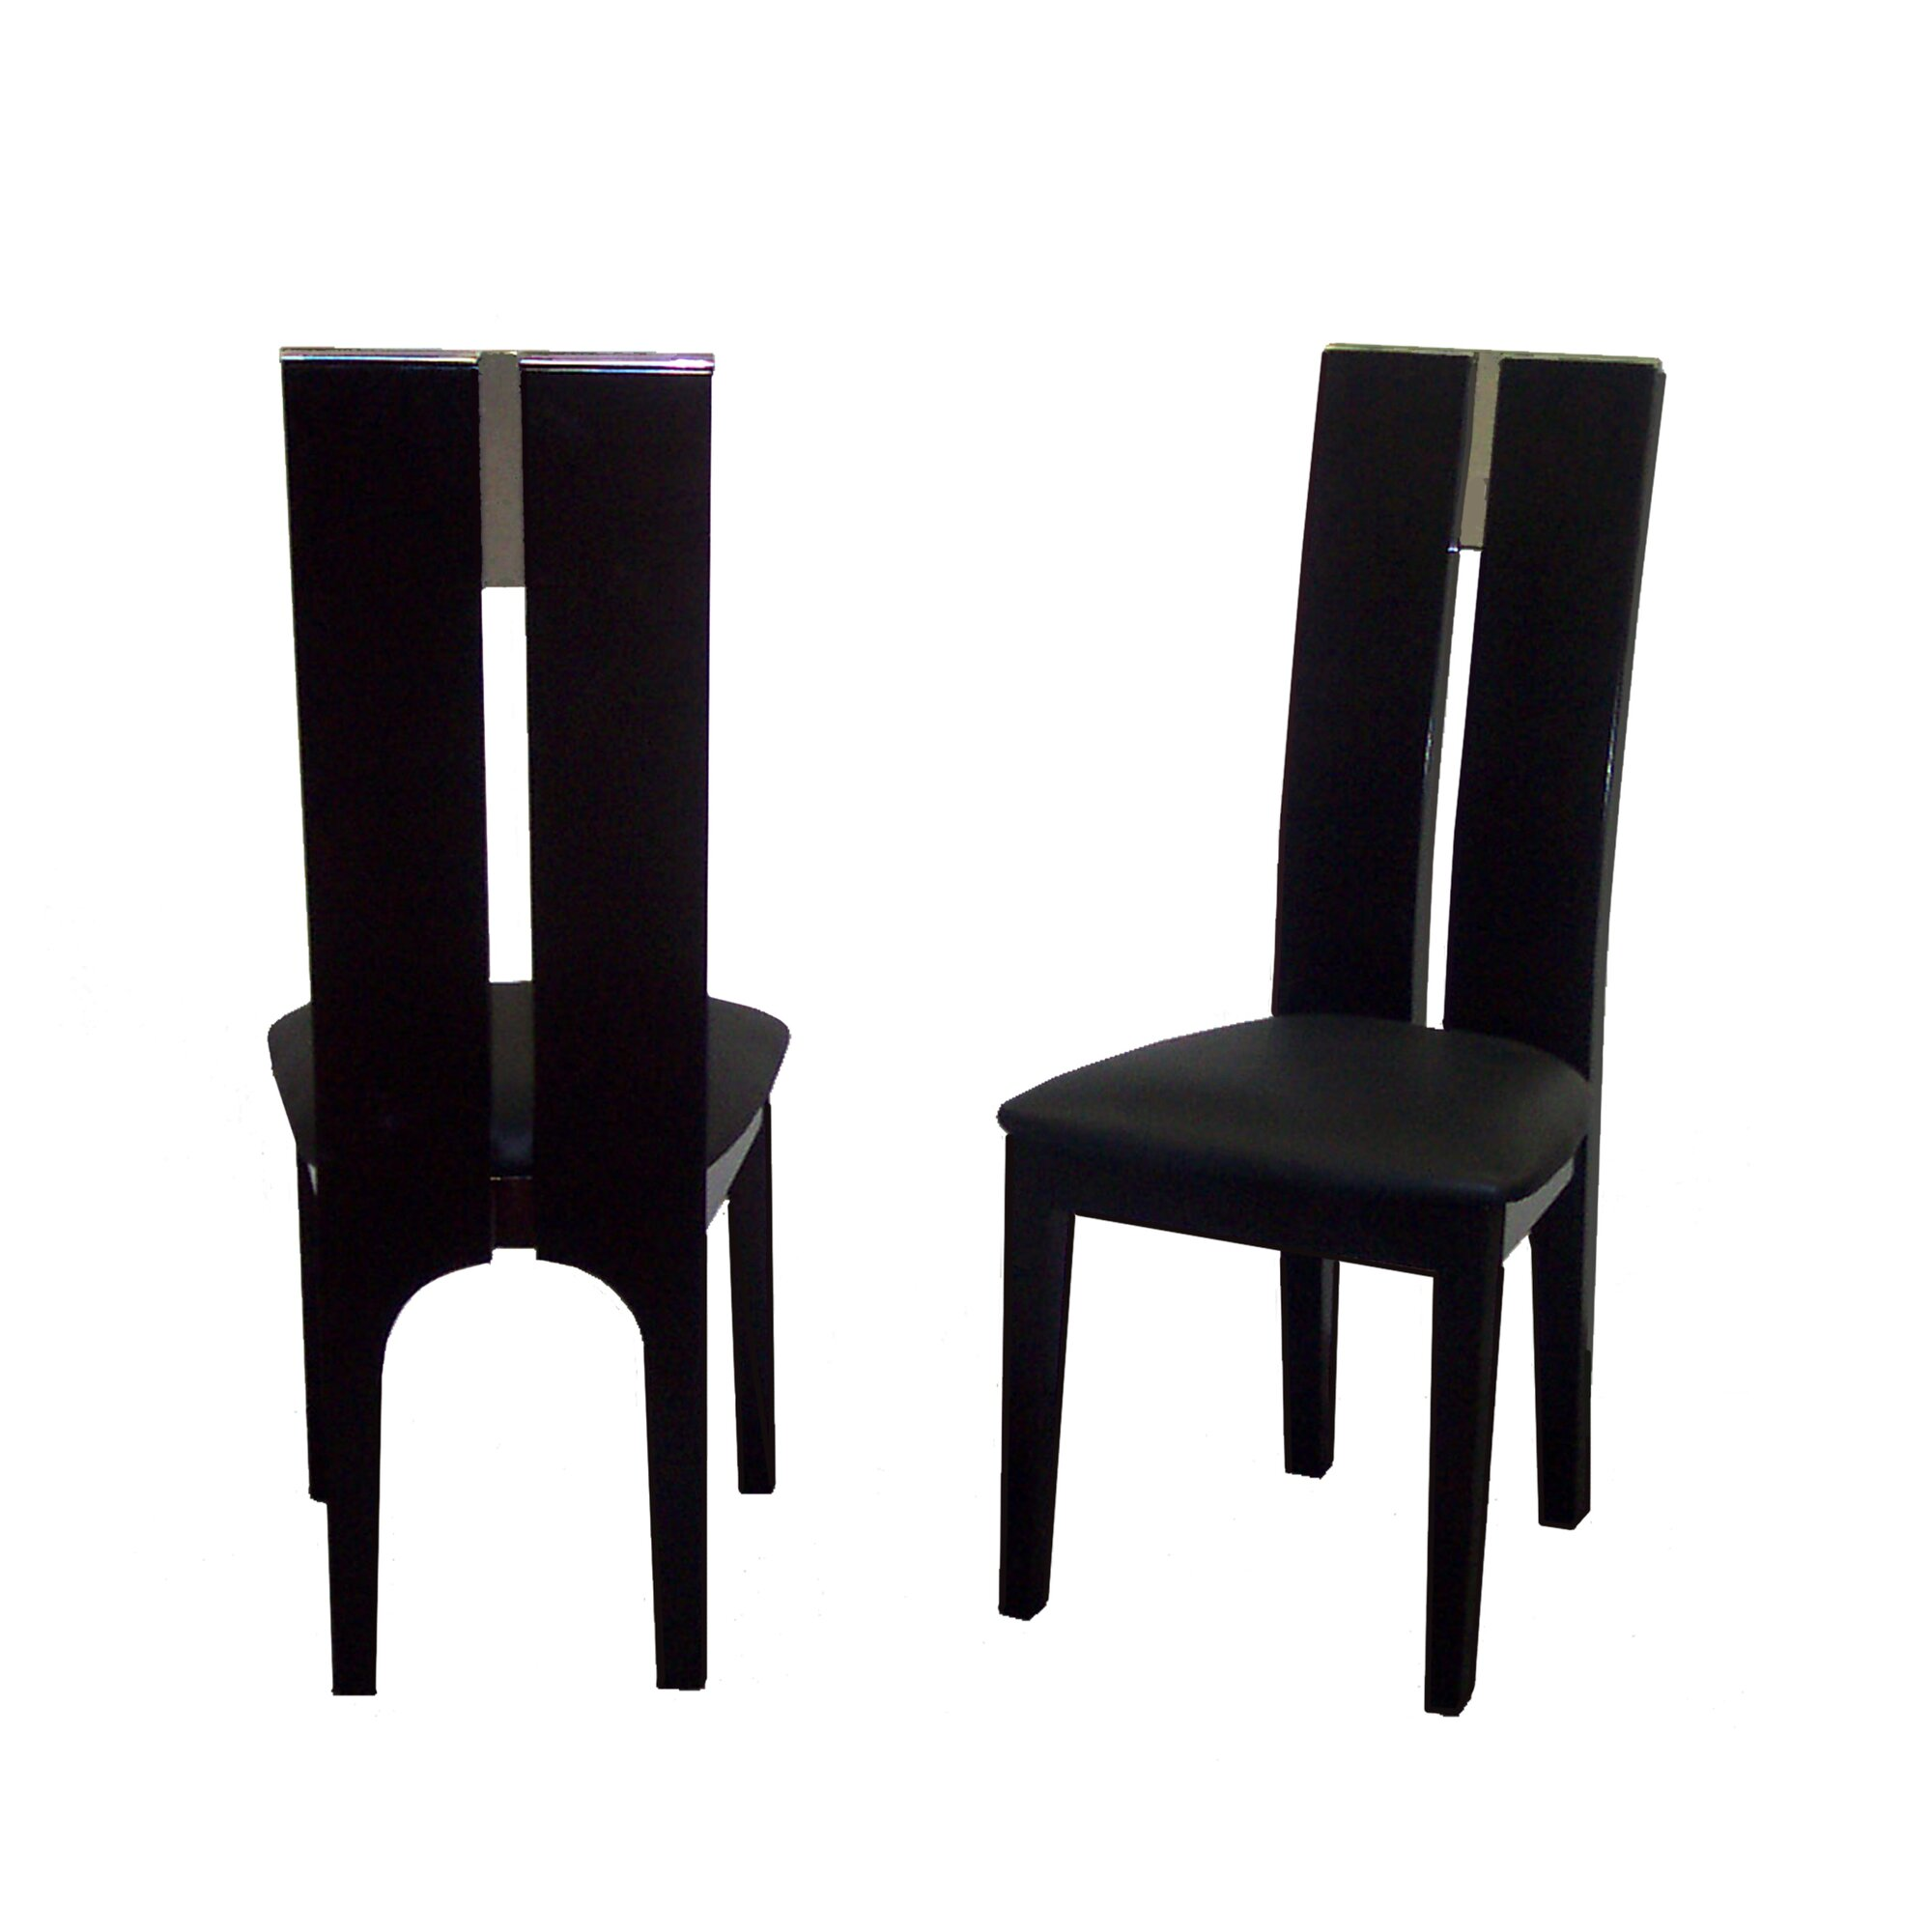 Black upholstered dining chairs - Avanti Genuine Leather Upholstered Dining Chair